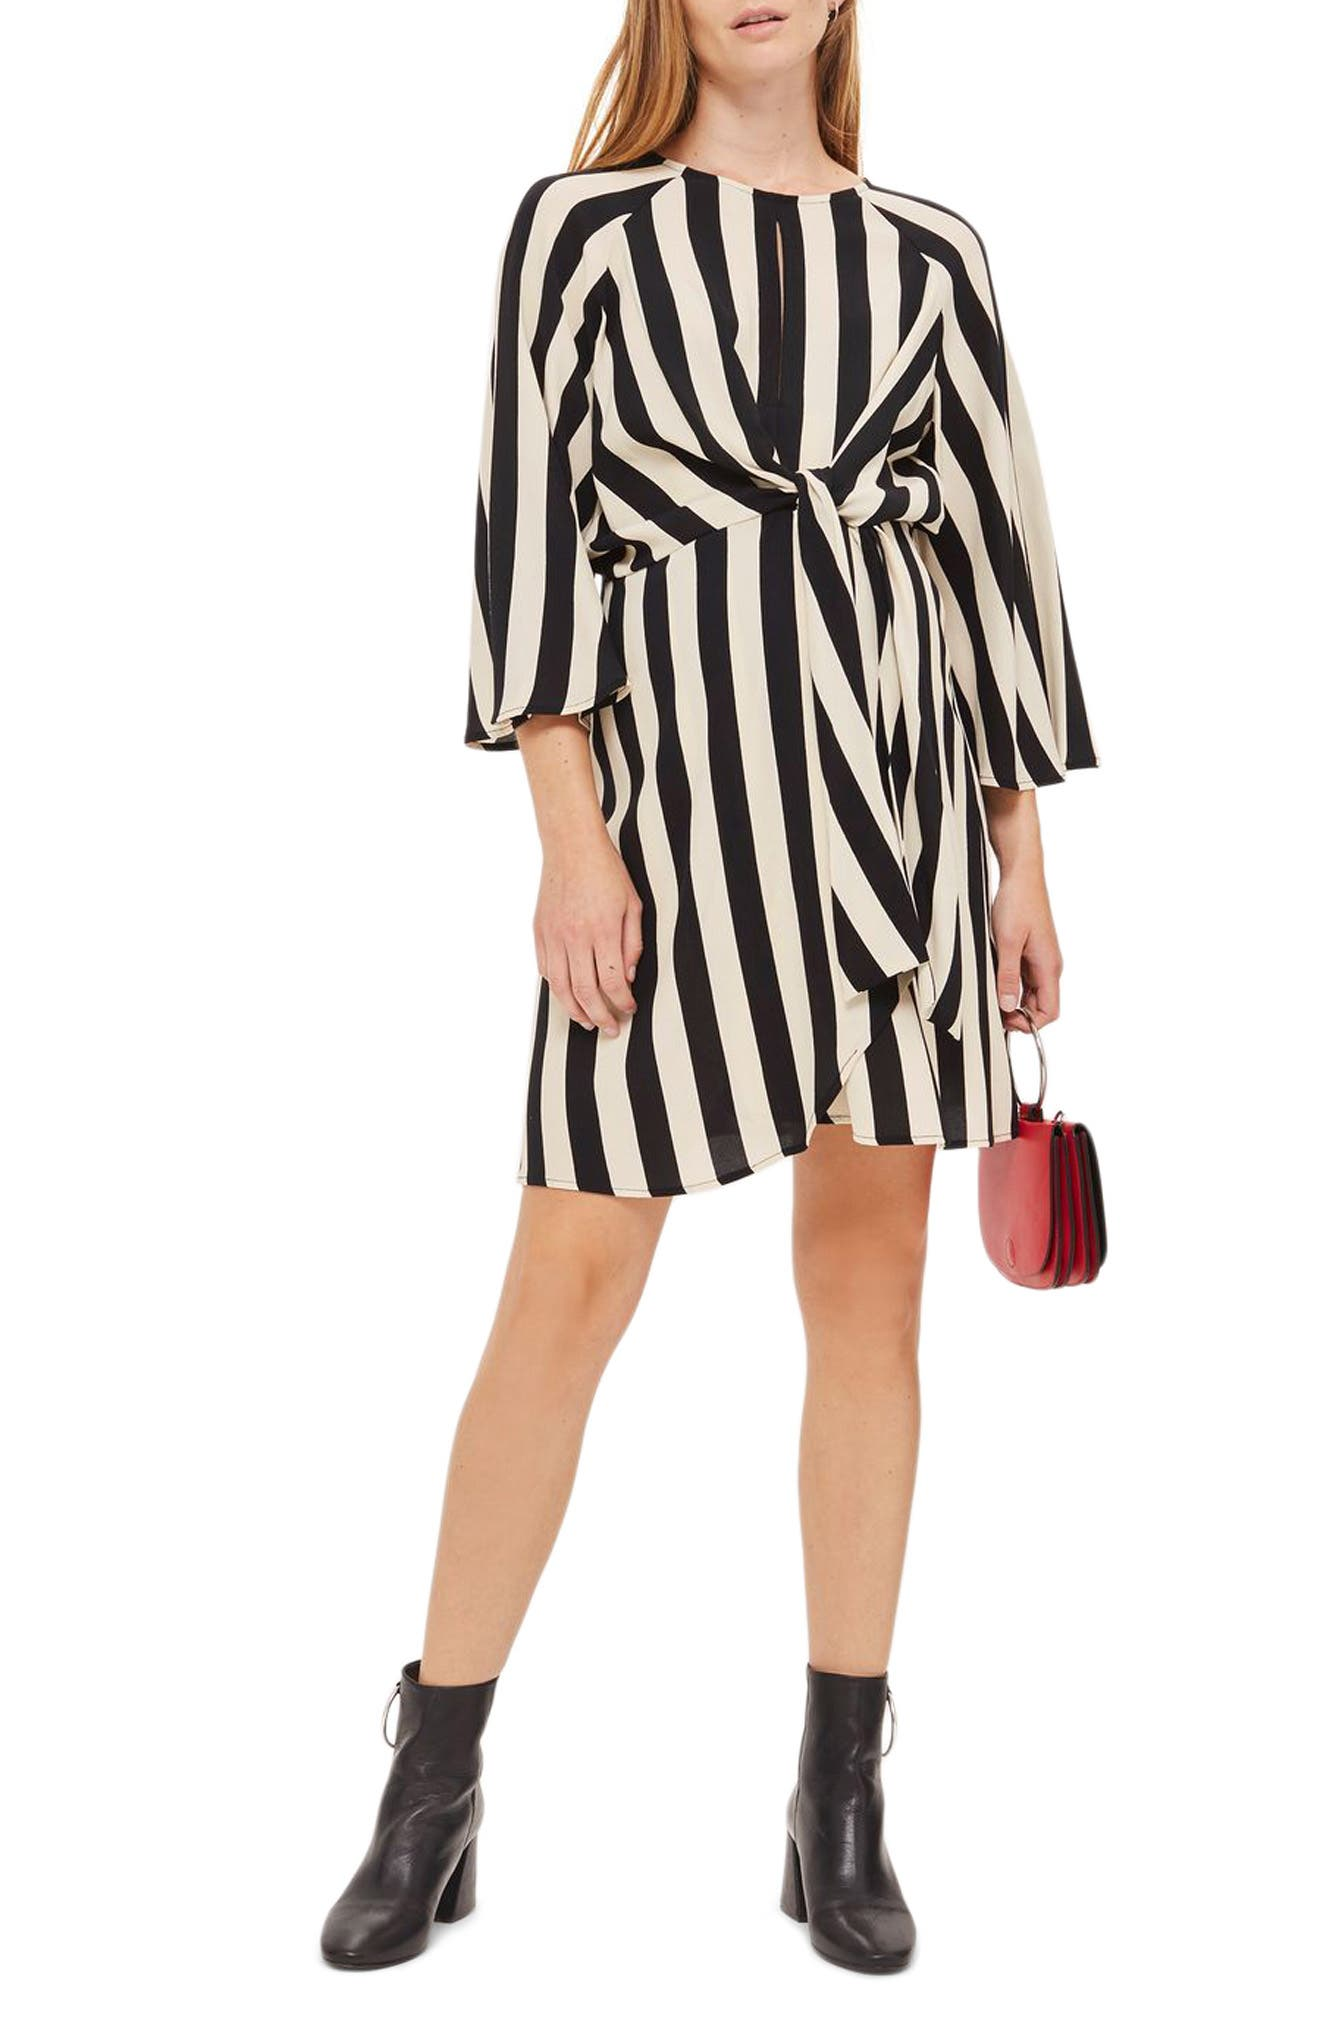 Topshop Humbug Stripe Knot Maternity Dress